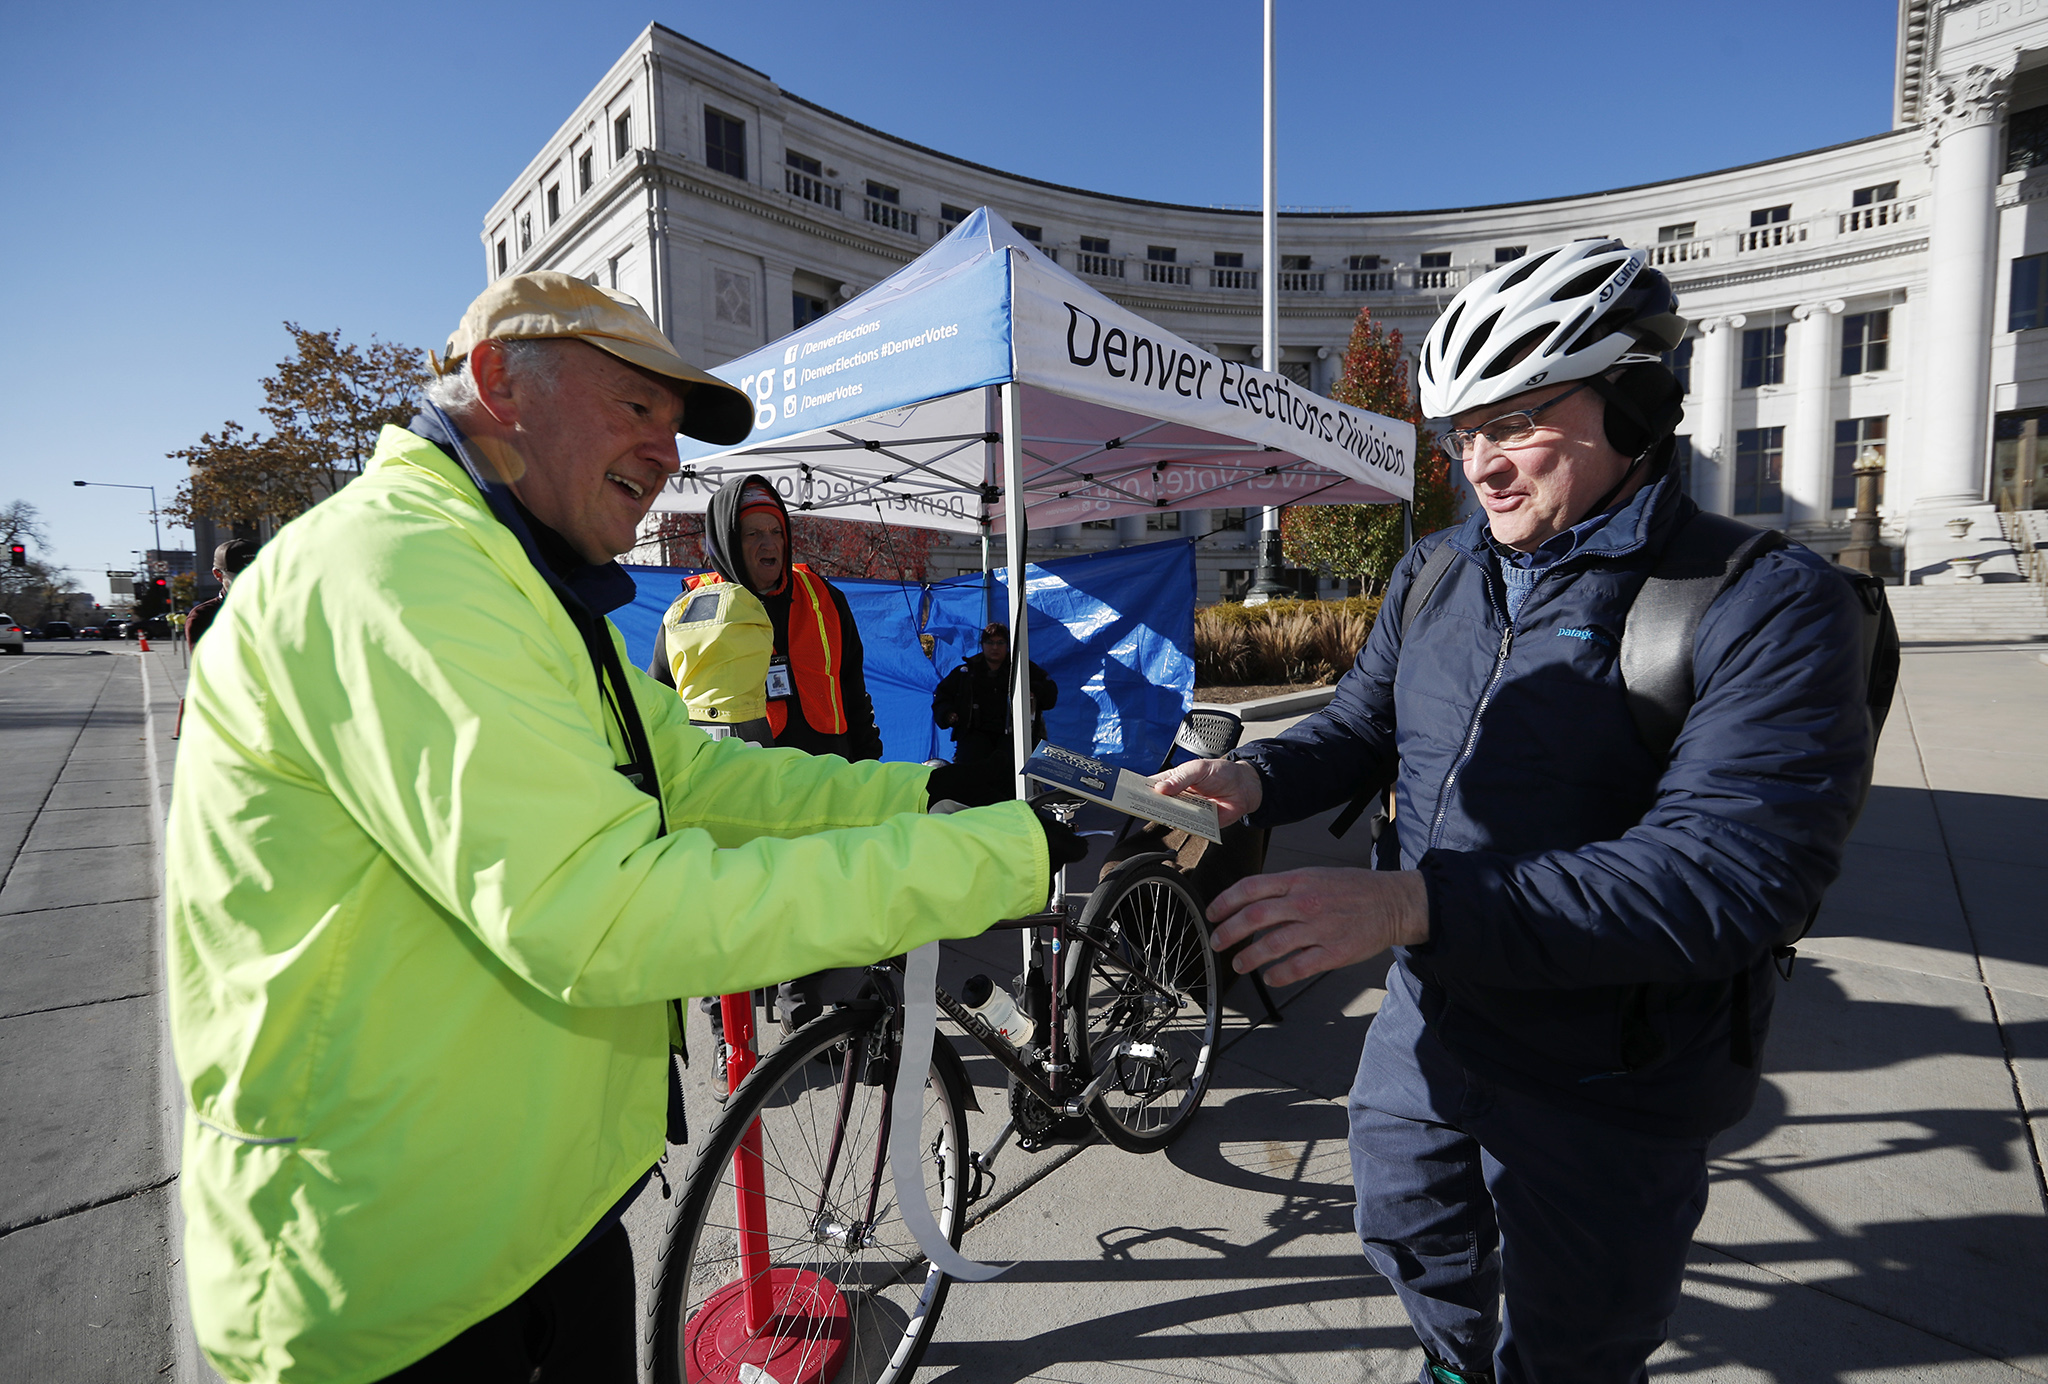 Election judge Michael Michalek, left, takes ballots from voter Lee Cryer as he drops them off at the Denver Elections Division location in front of the City/County Building Tuesday, Nov. 6, 2018, in Denver.